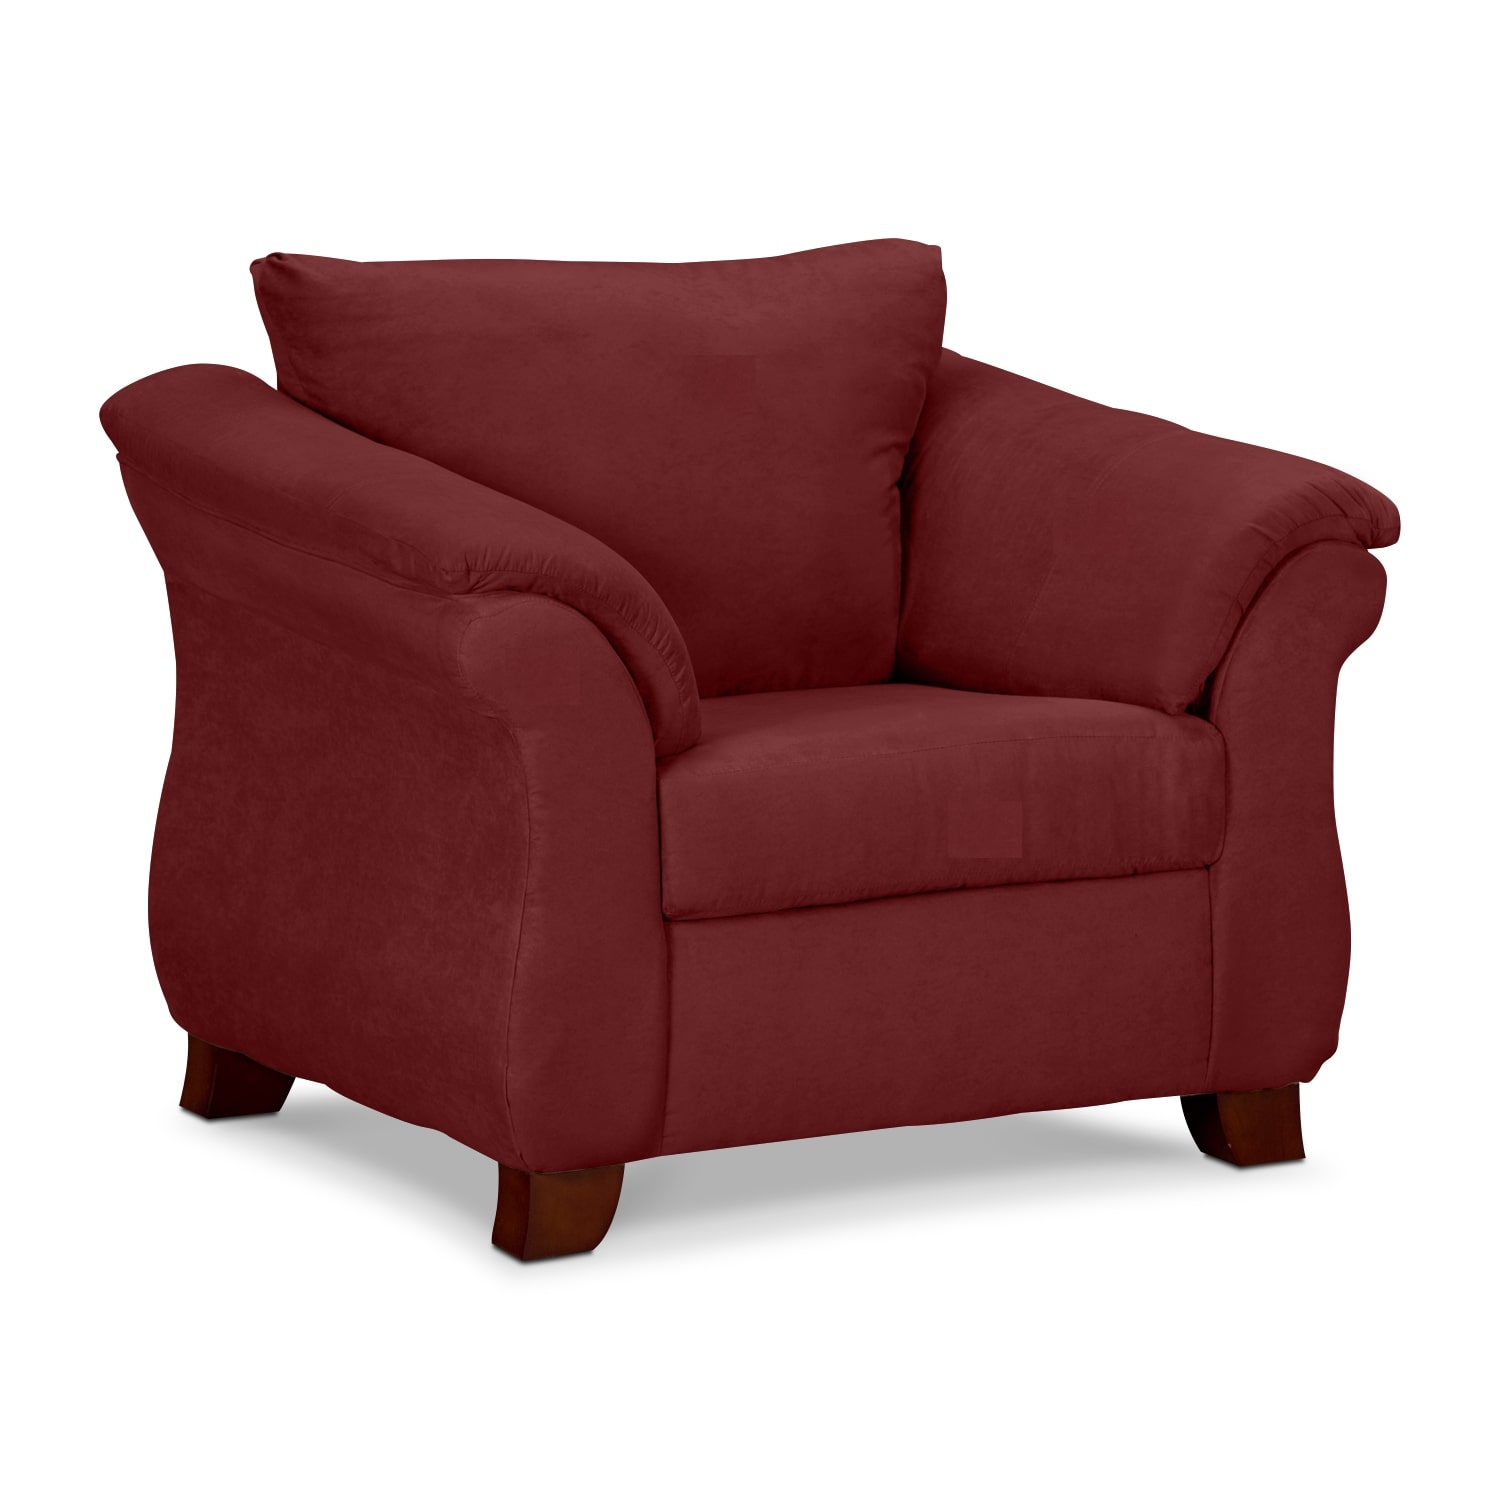 Adrian Chair Red